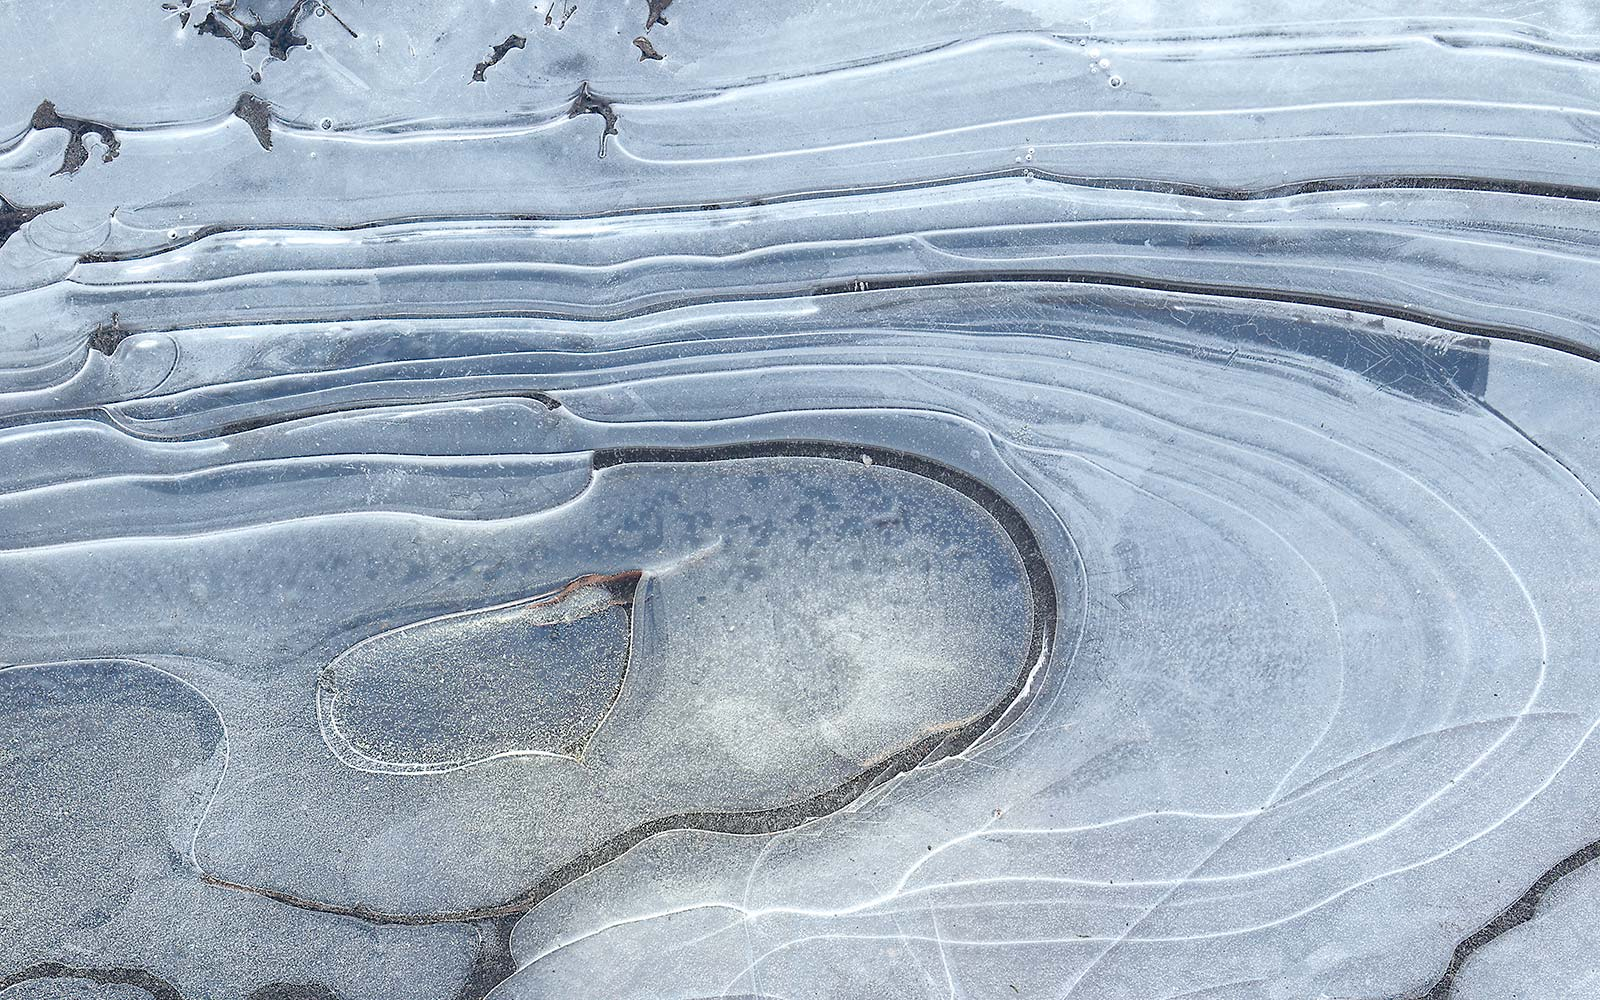 Those Swirly Ice Formations on Puddles Actually Have a Name